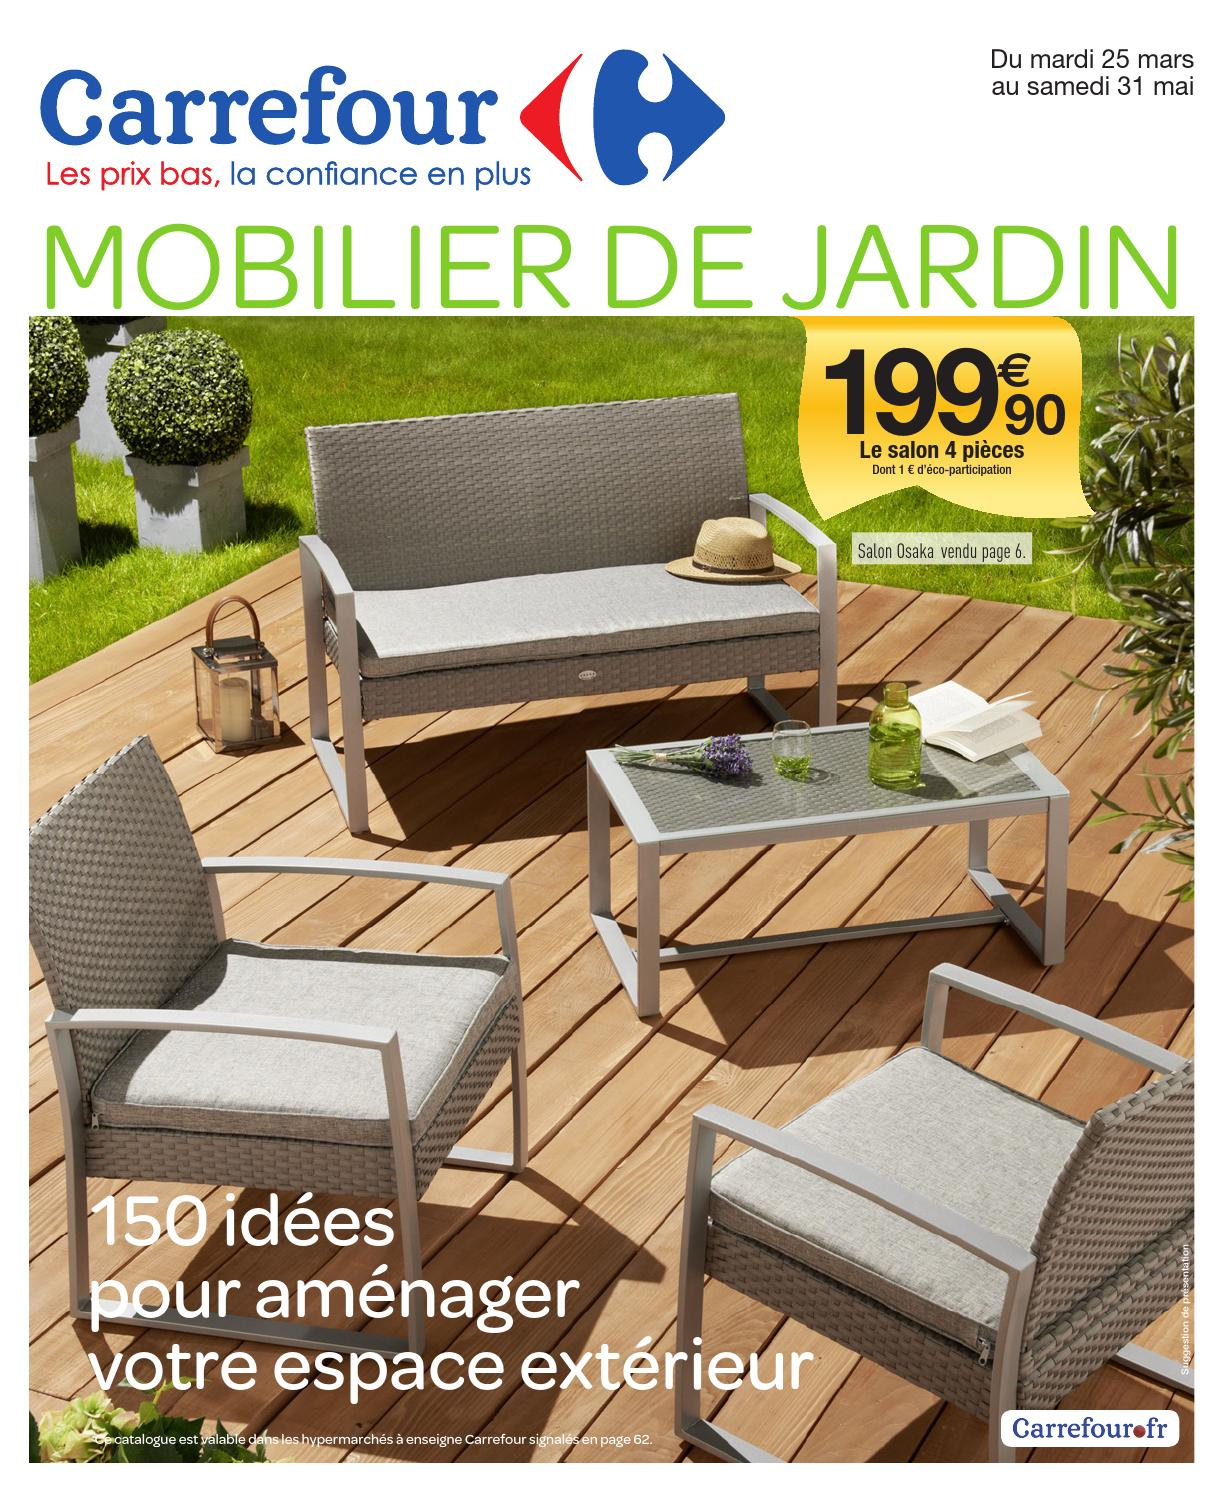 Catalogue Carrefour - 25.03-31.05.2014 By Joe Monroe - Issuu intérieur Transat Jardin Carrefour